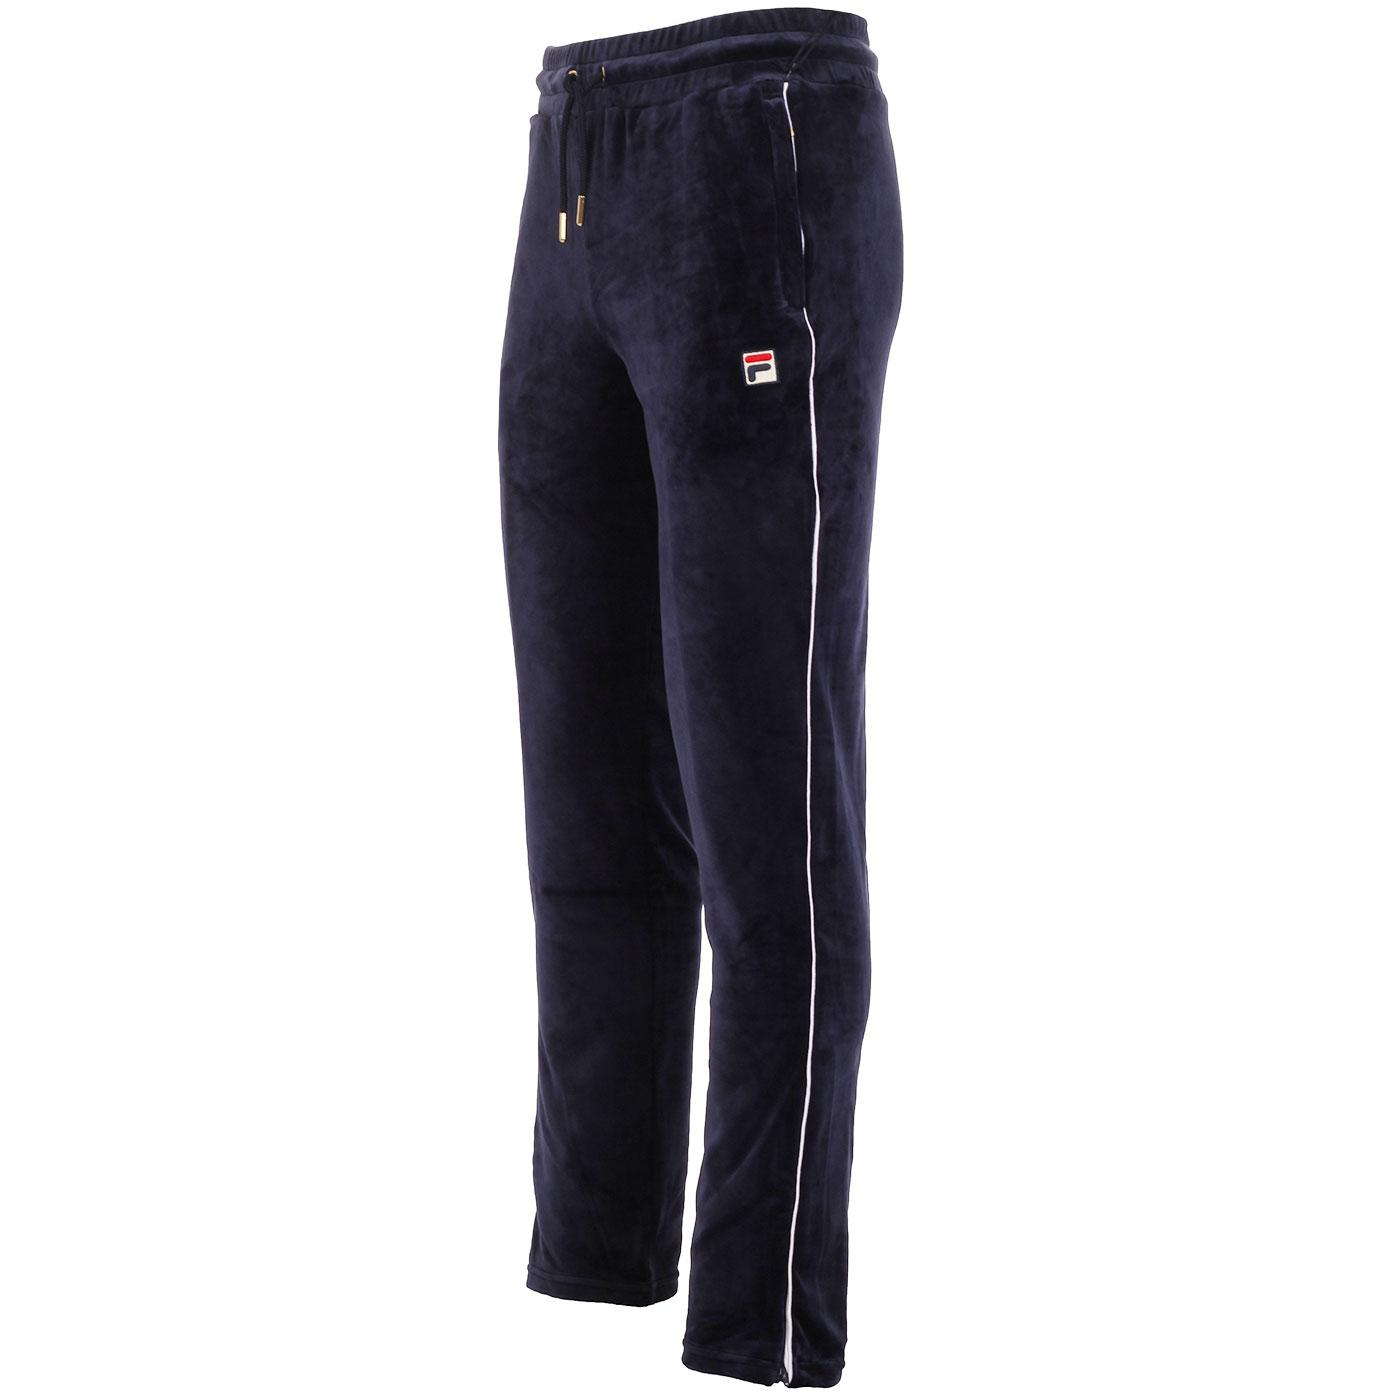 Cyrus FILA VINTAGE 80s Velour Piped Track Pants P